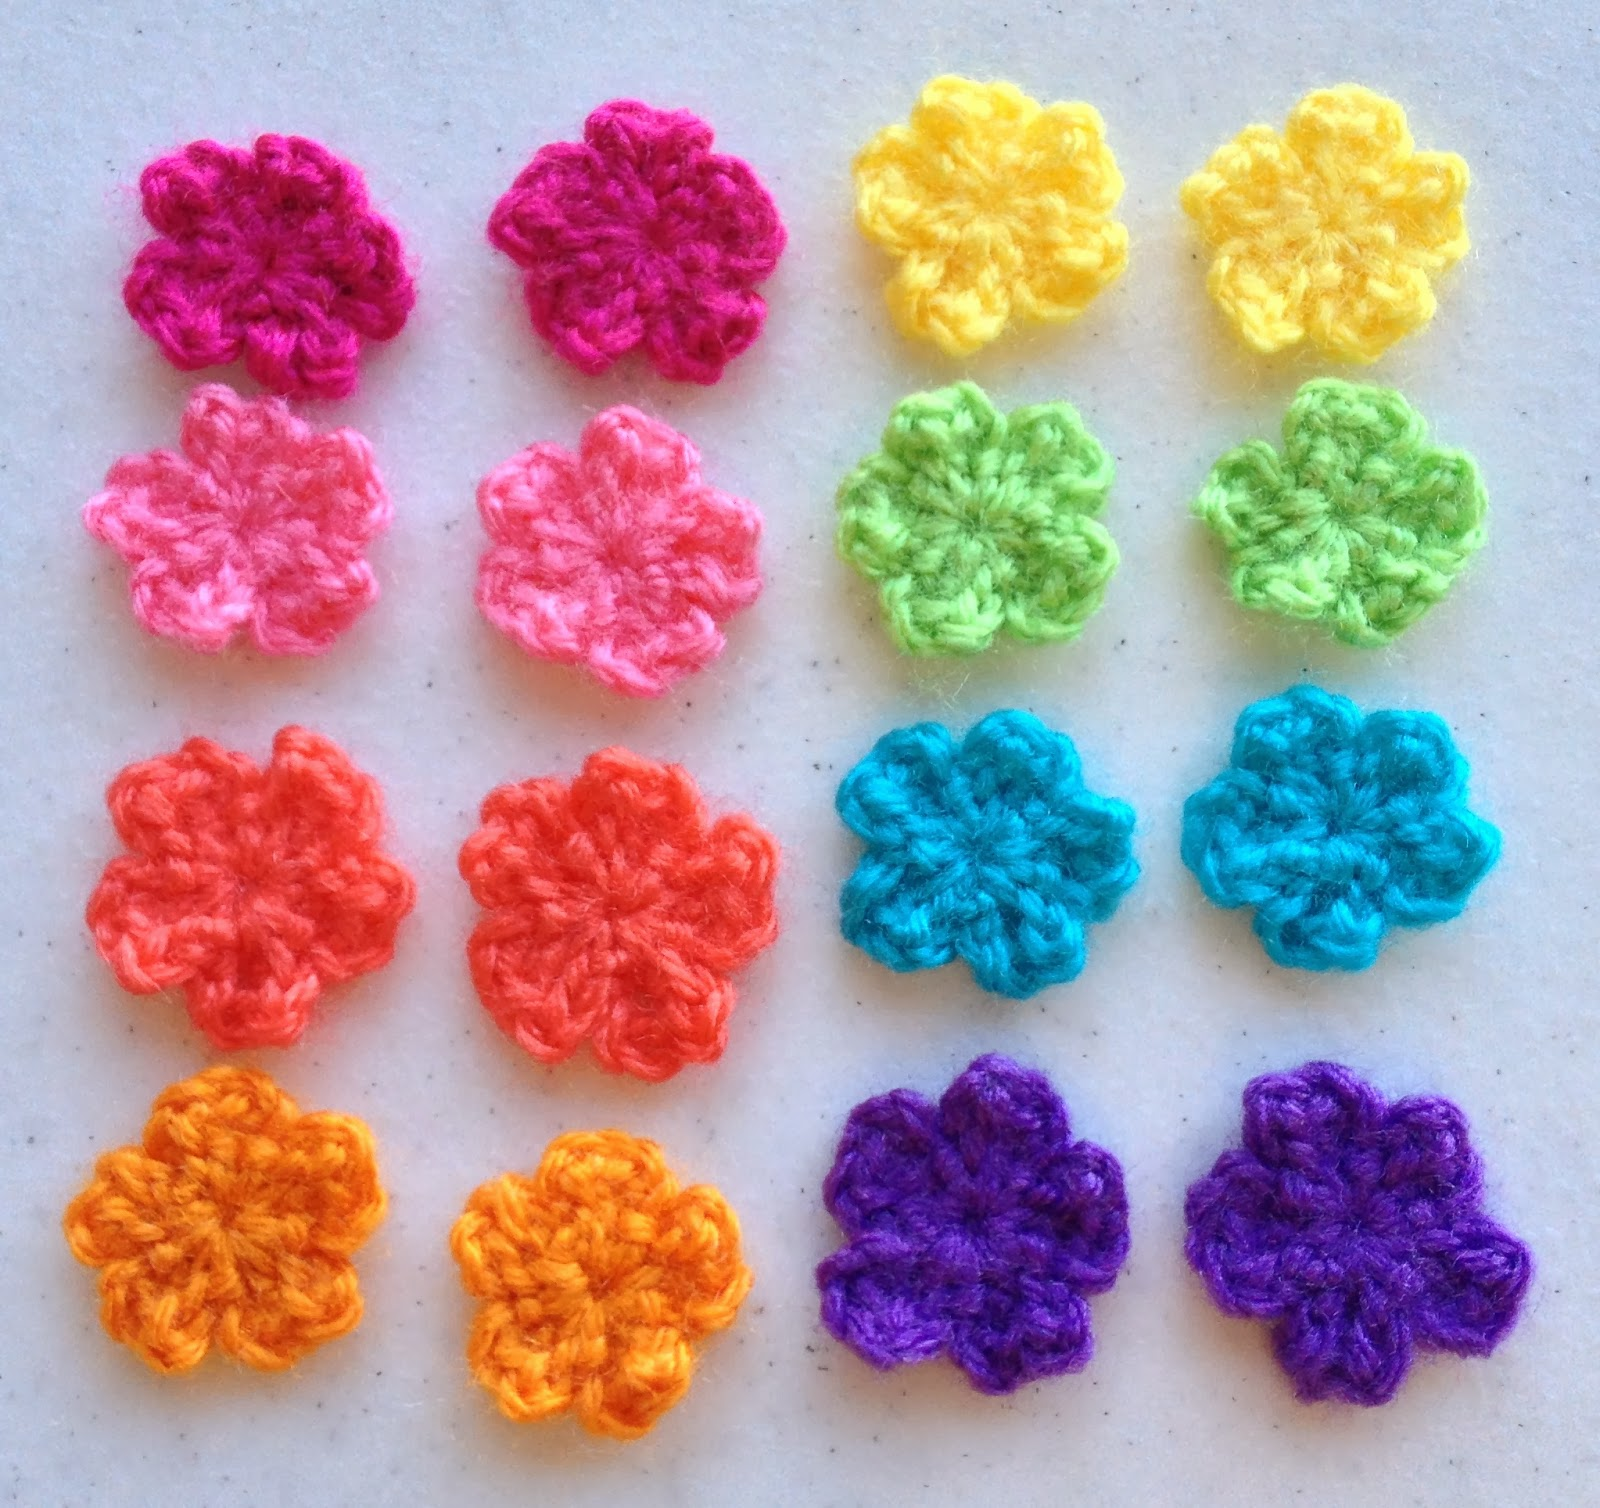 Make Crochet Flower Pattern : Make ALL The Things!: Small Flower Crochet Pattern